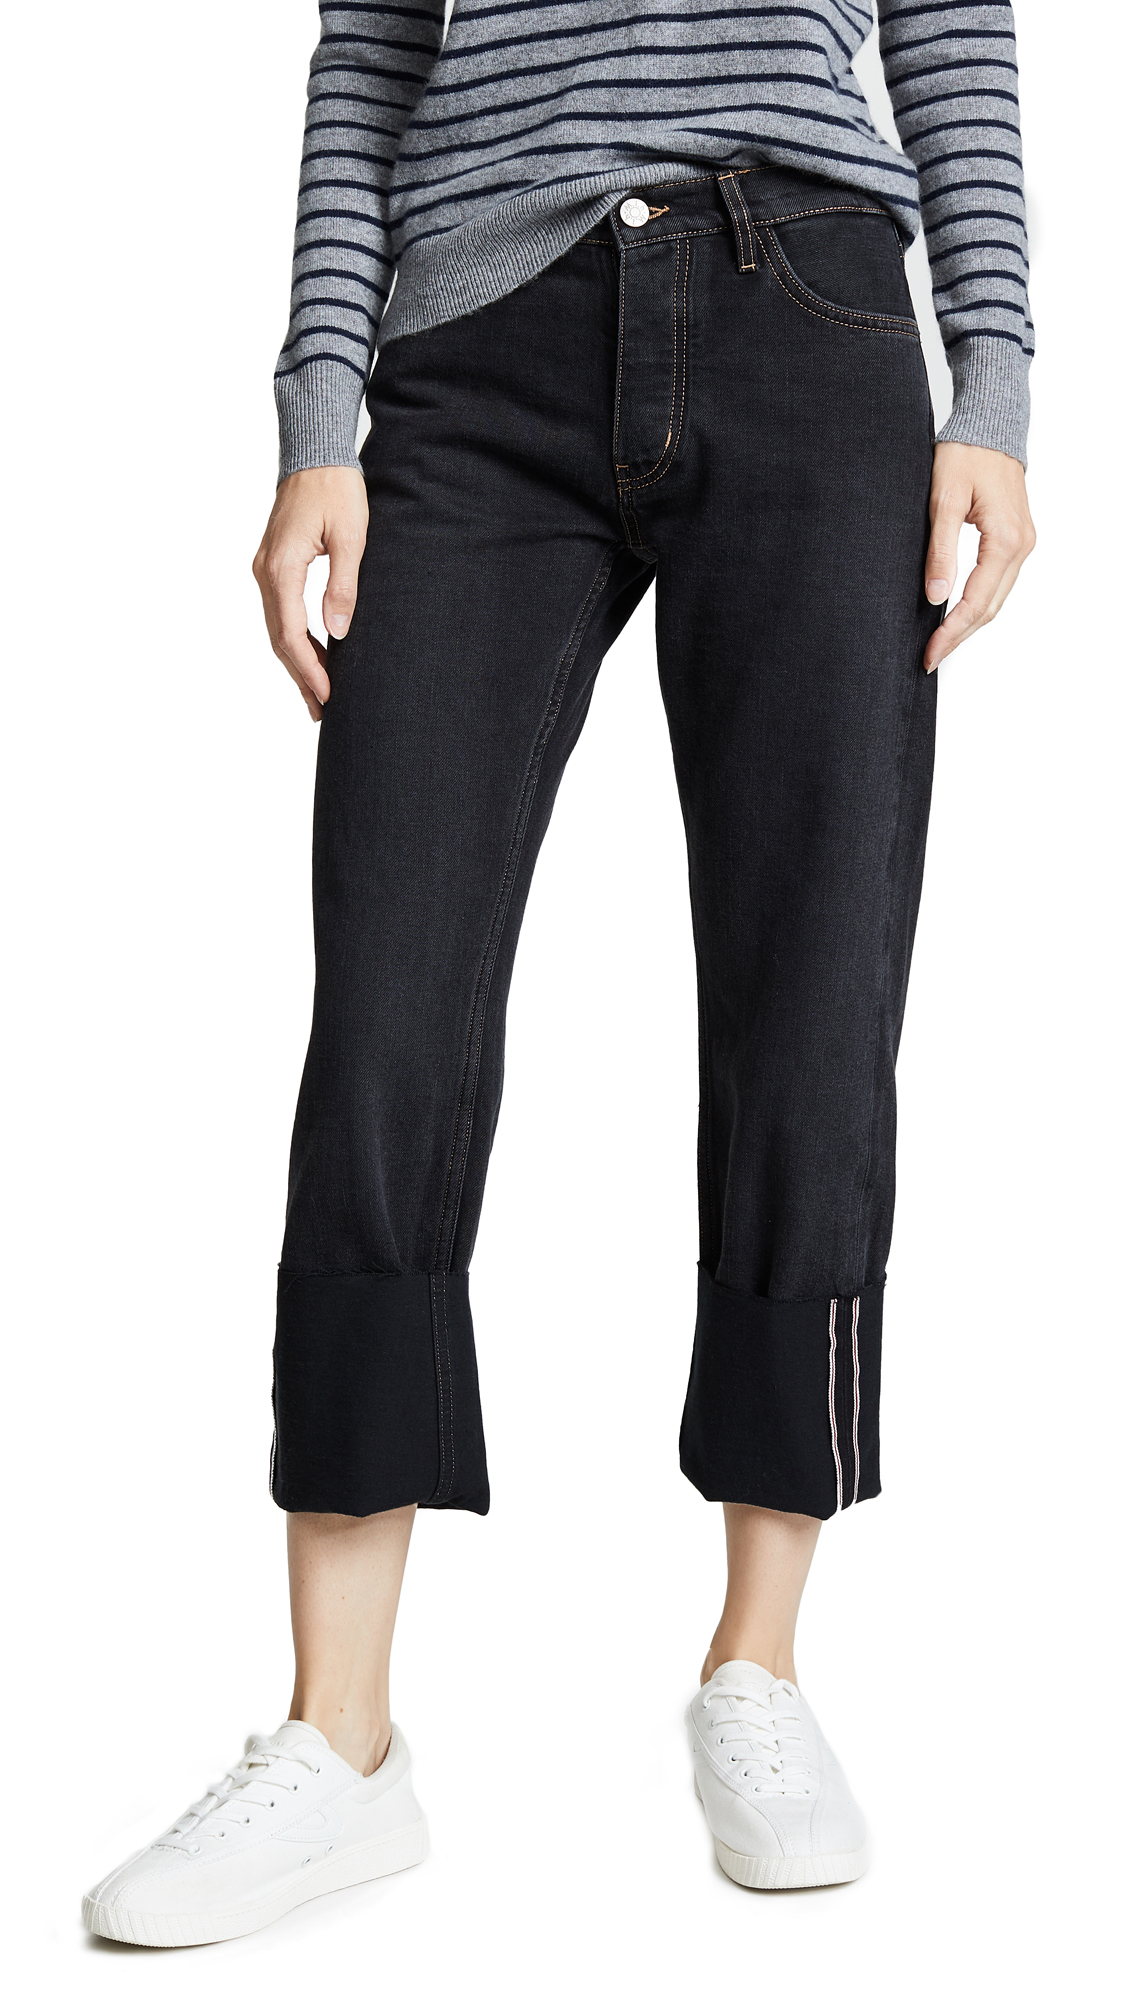 M.i.h Jeans The Pheobe Cuffed Jeans